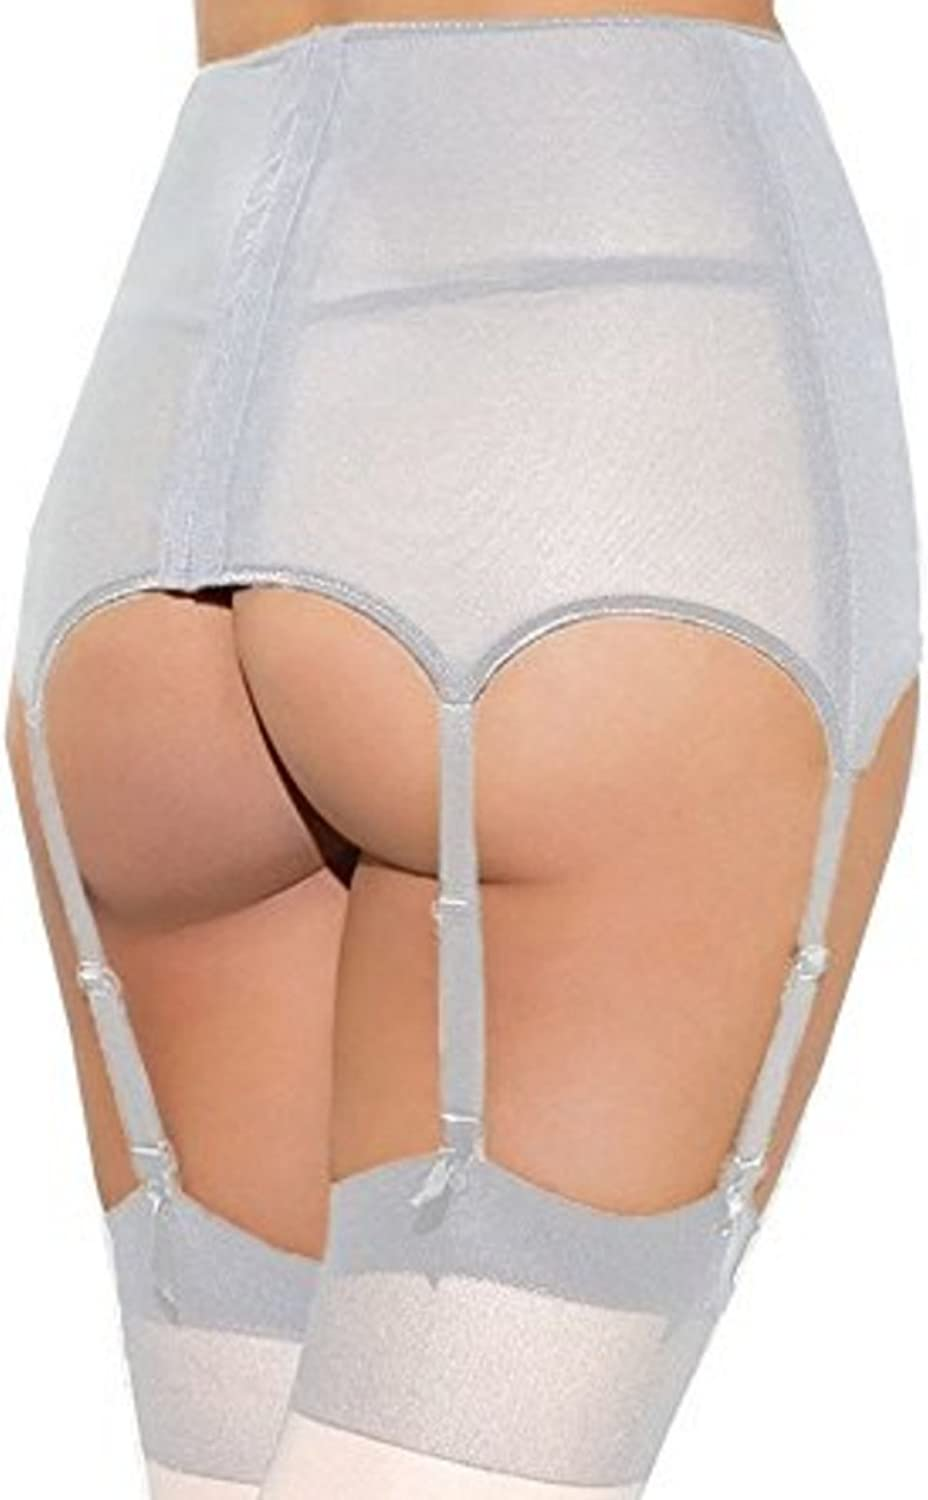 Lannorn Womens Plus Size Lace High-waisted Hollow Out Adjustable Suspender Garter Belt With Matching Thong